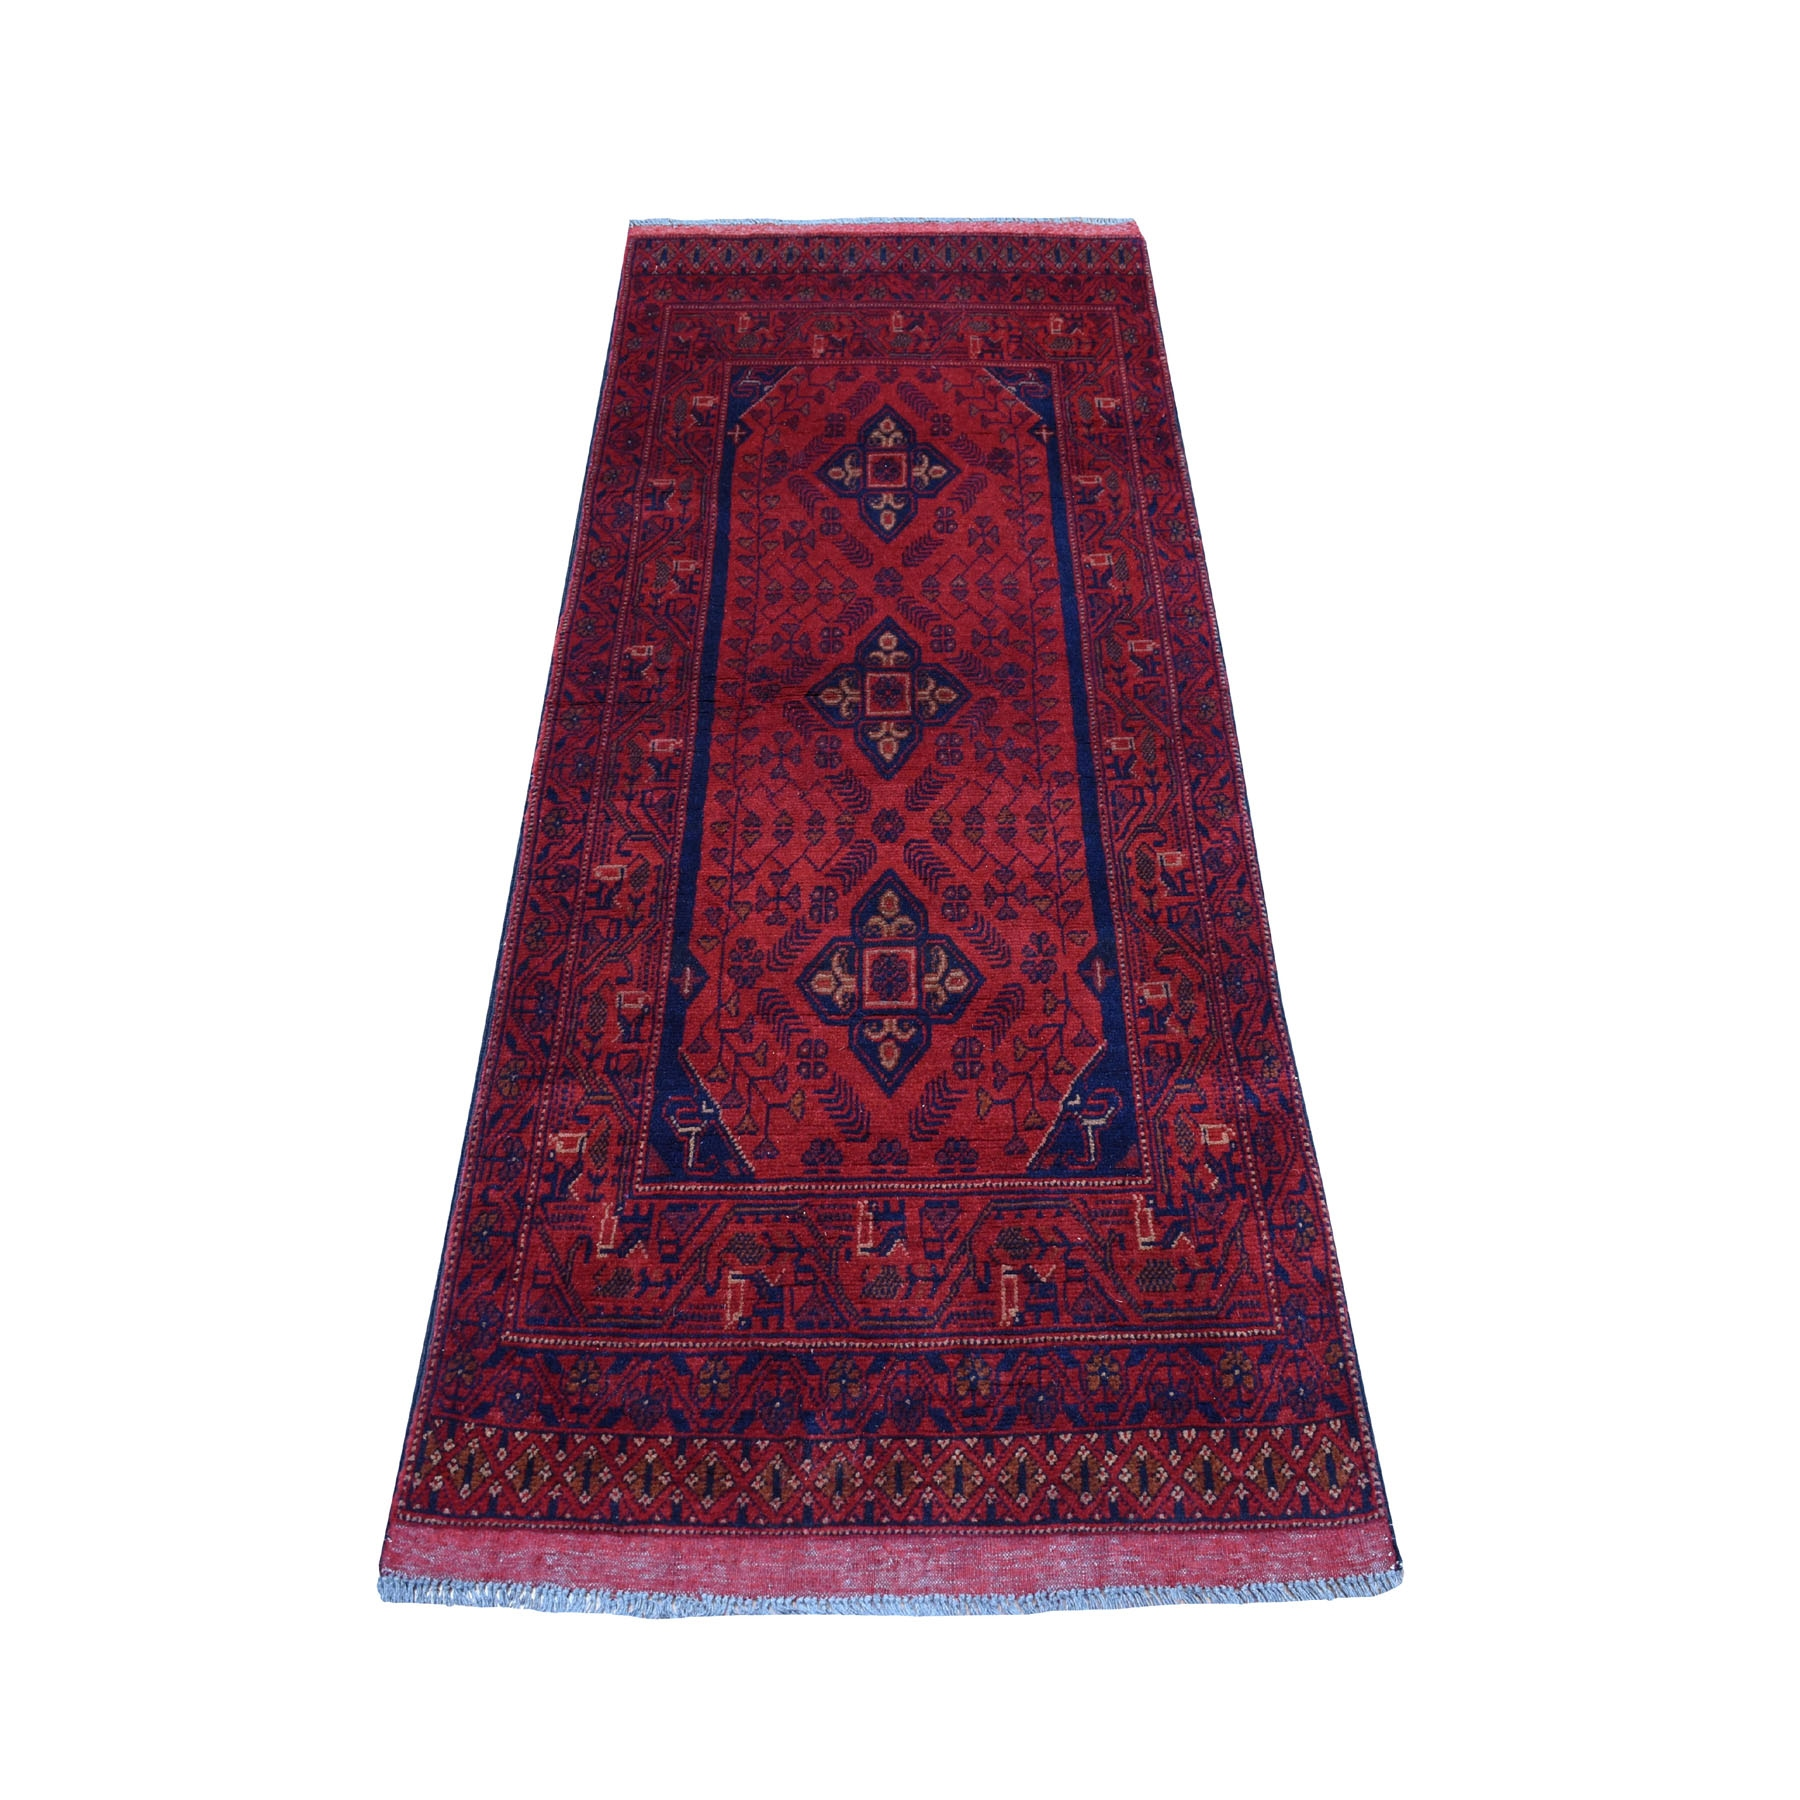 "2'6""X6'2"" Deep And Saturated Red Geometric Afghan Andkhoy Runner Pure Wool Hand Knotted Oriental Rug moaecee9"